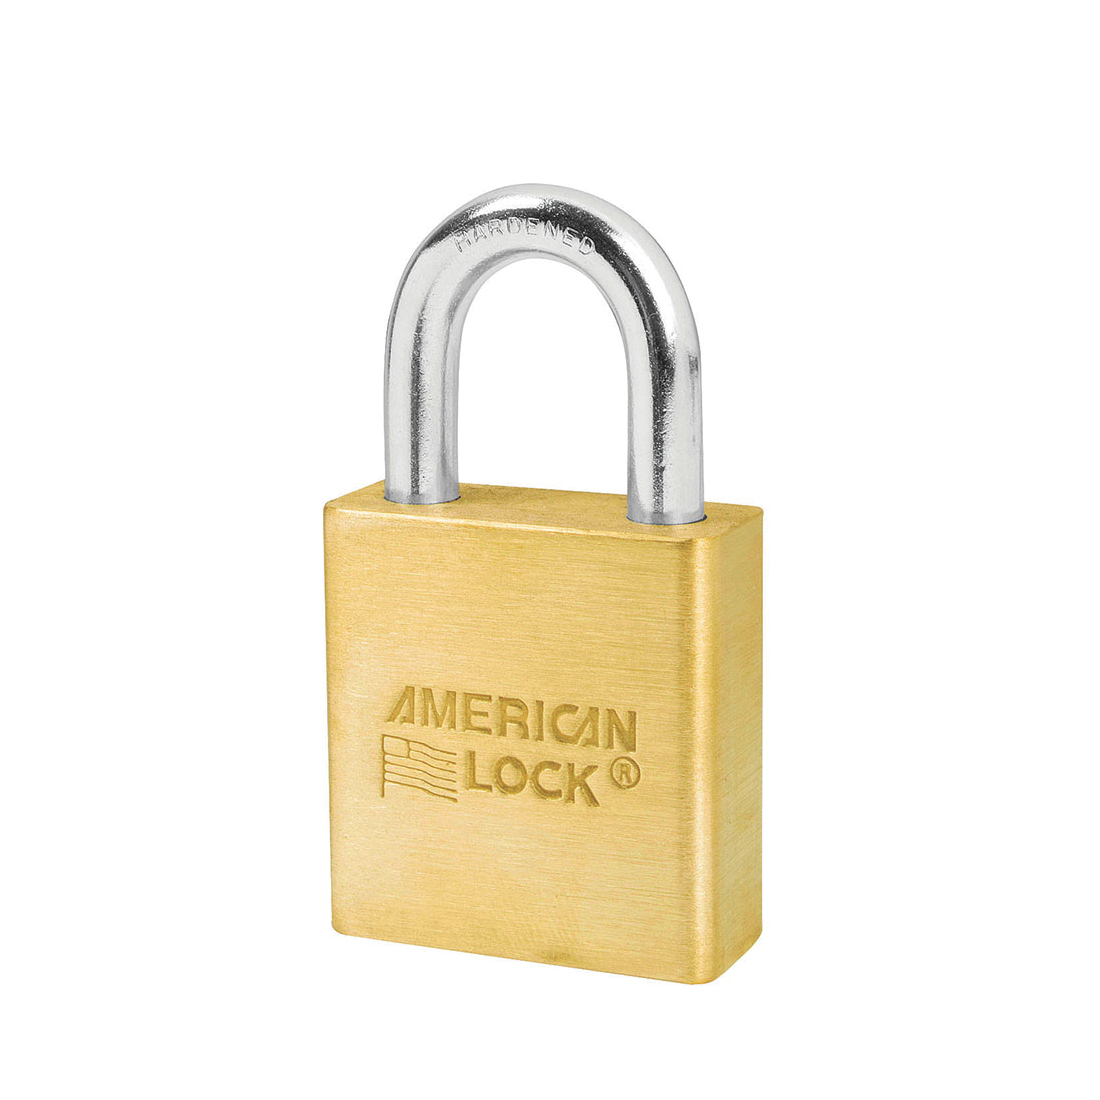 American Lock® A5560 Rekeyable Safety Padlock, Different Key, Brass Body, 5/16 in Dia Shackle, Brass, 5-Pin Tumbler Cylindrical/Dual Ball Bearing Locking Mechanism